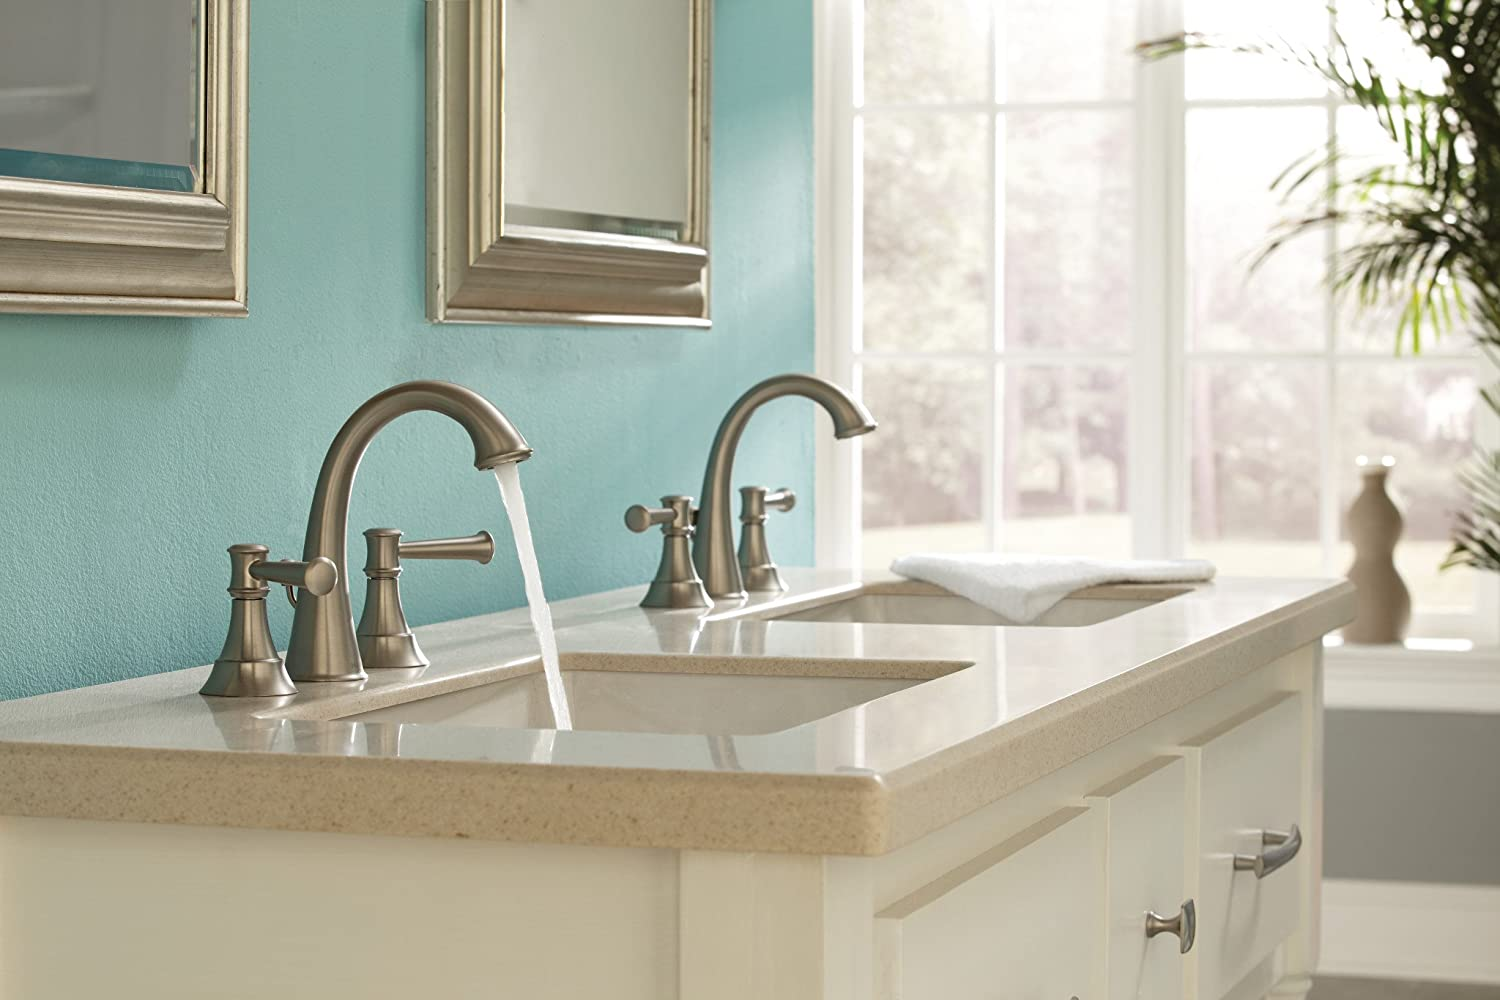 Moen WS84778MSRN Ashville Widespread 2 Handle Bathroom Faucet with ...